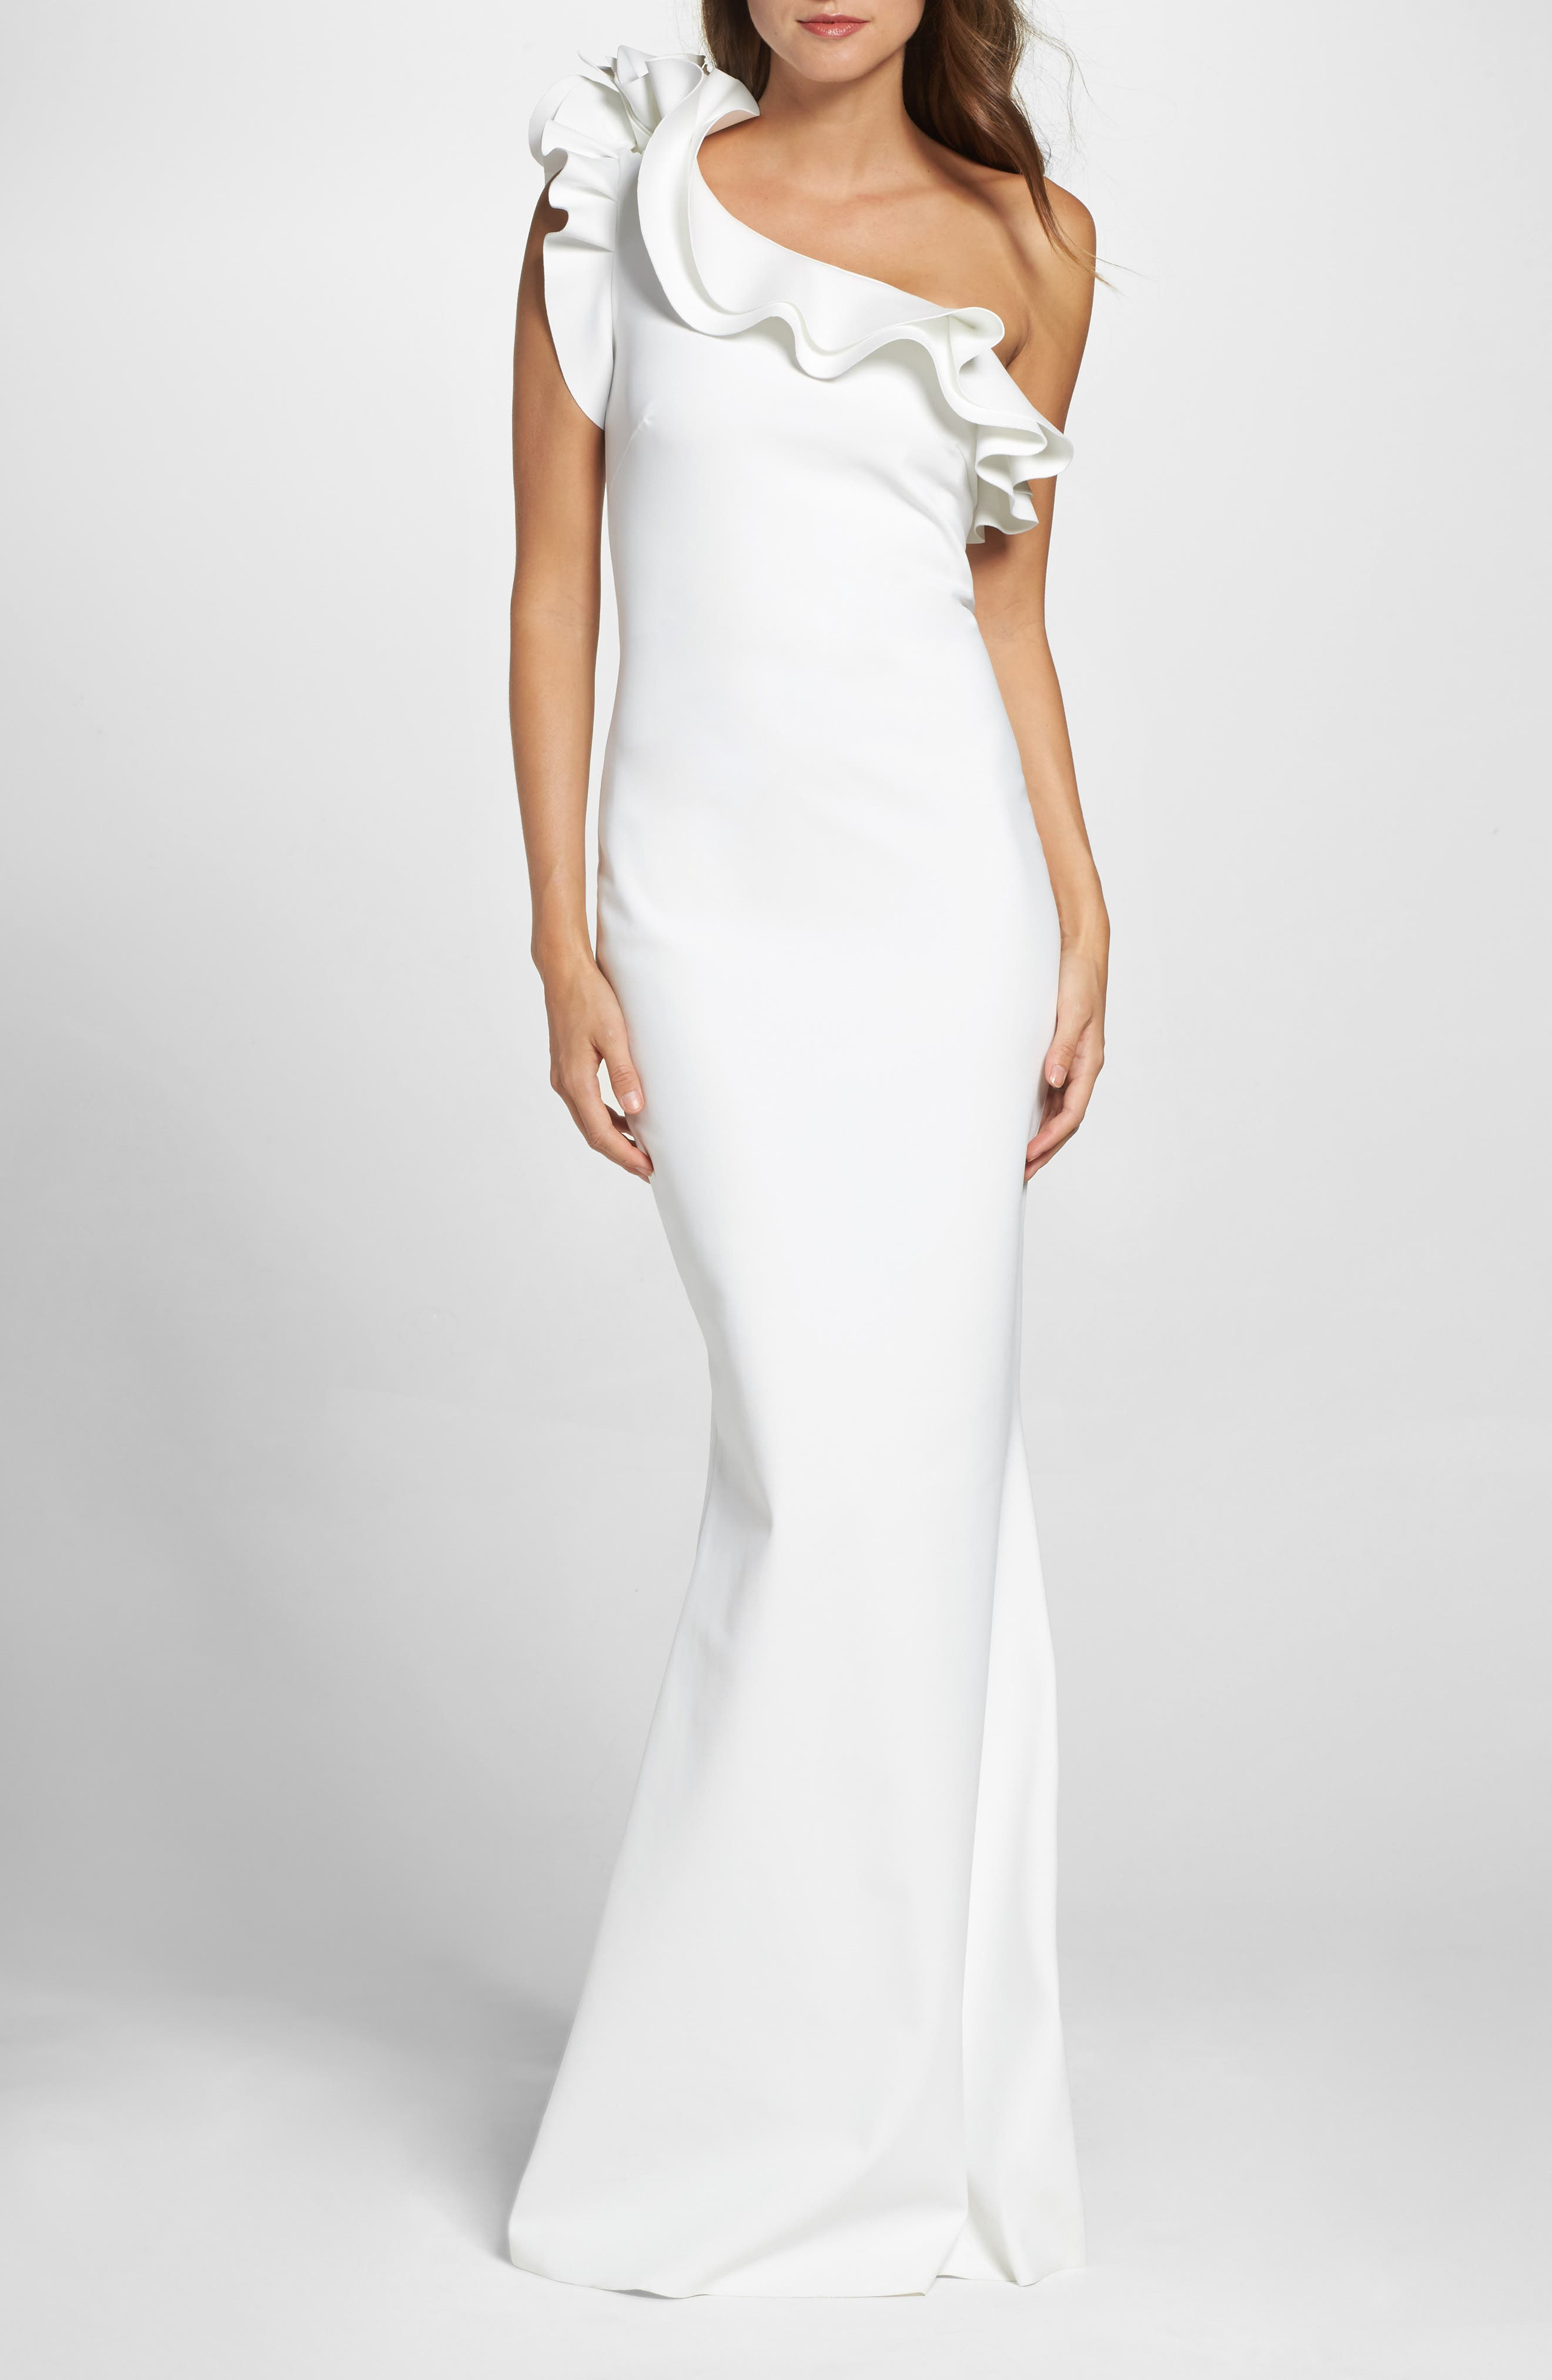 Elisir Ruffle One-Shoulder Gown,                         Main,                         color, 100